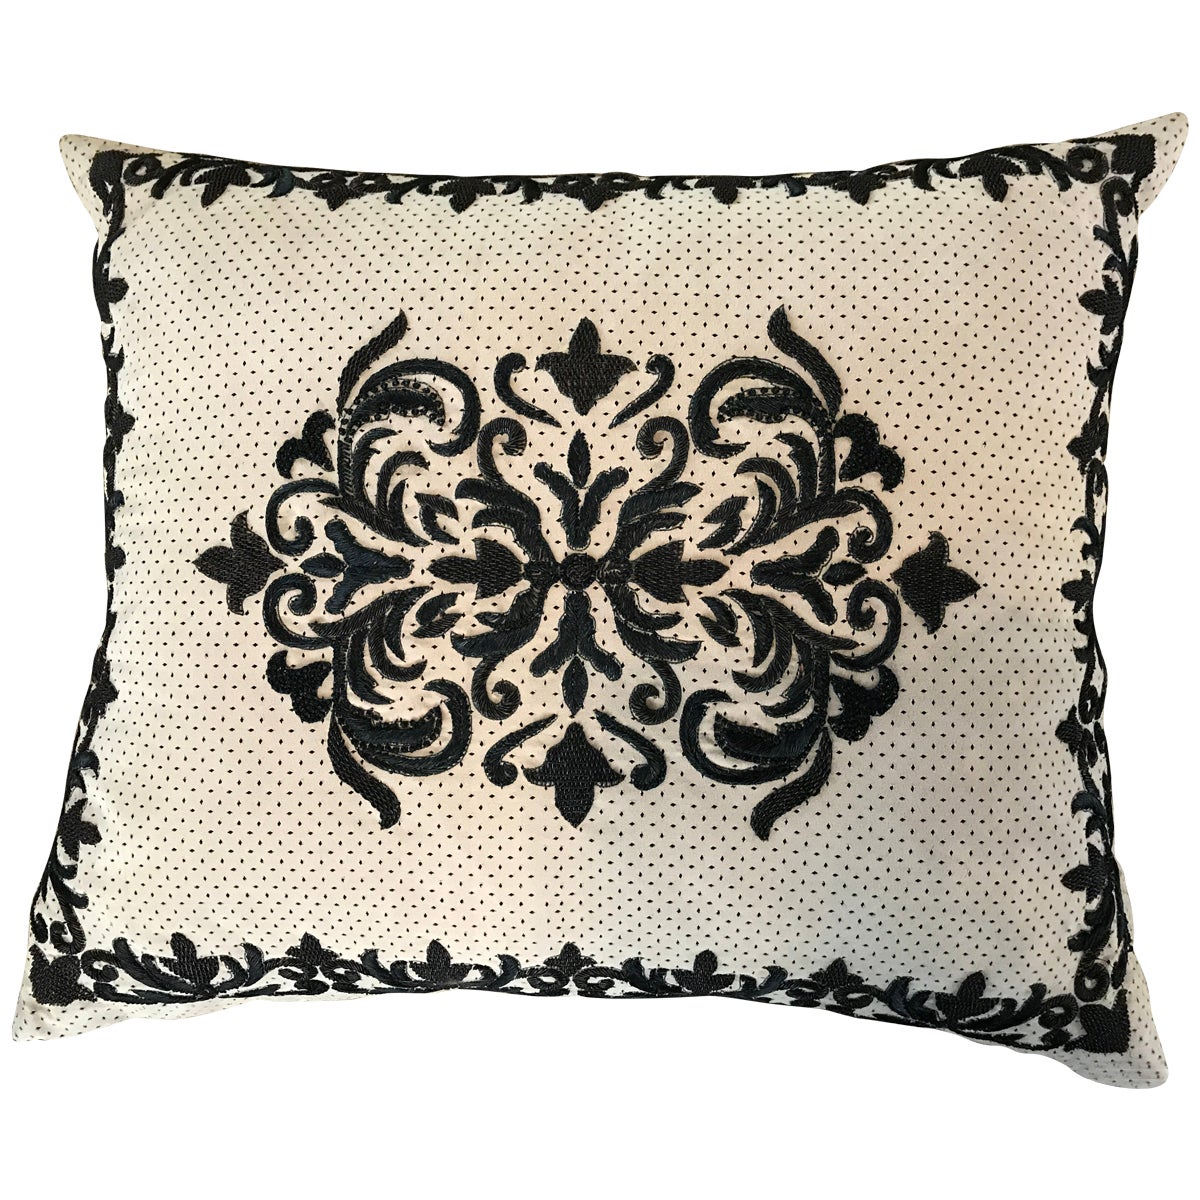 Chic Sand and Black Ultra Suede Heavily Embroidered Decorative Pillow